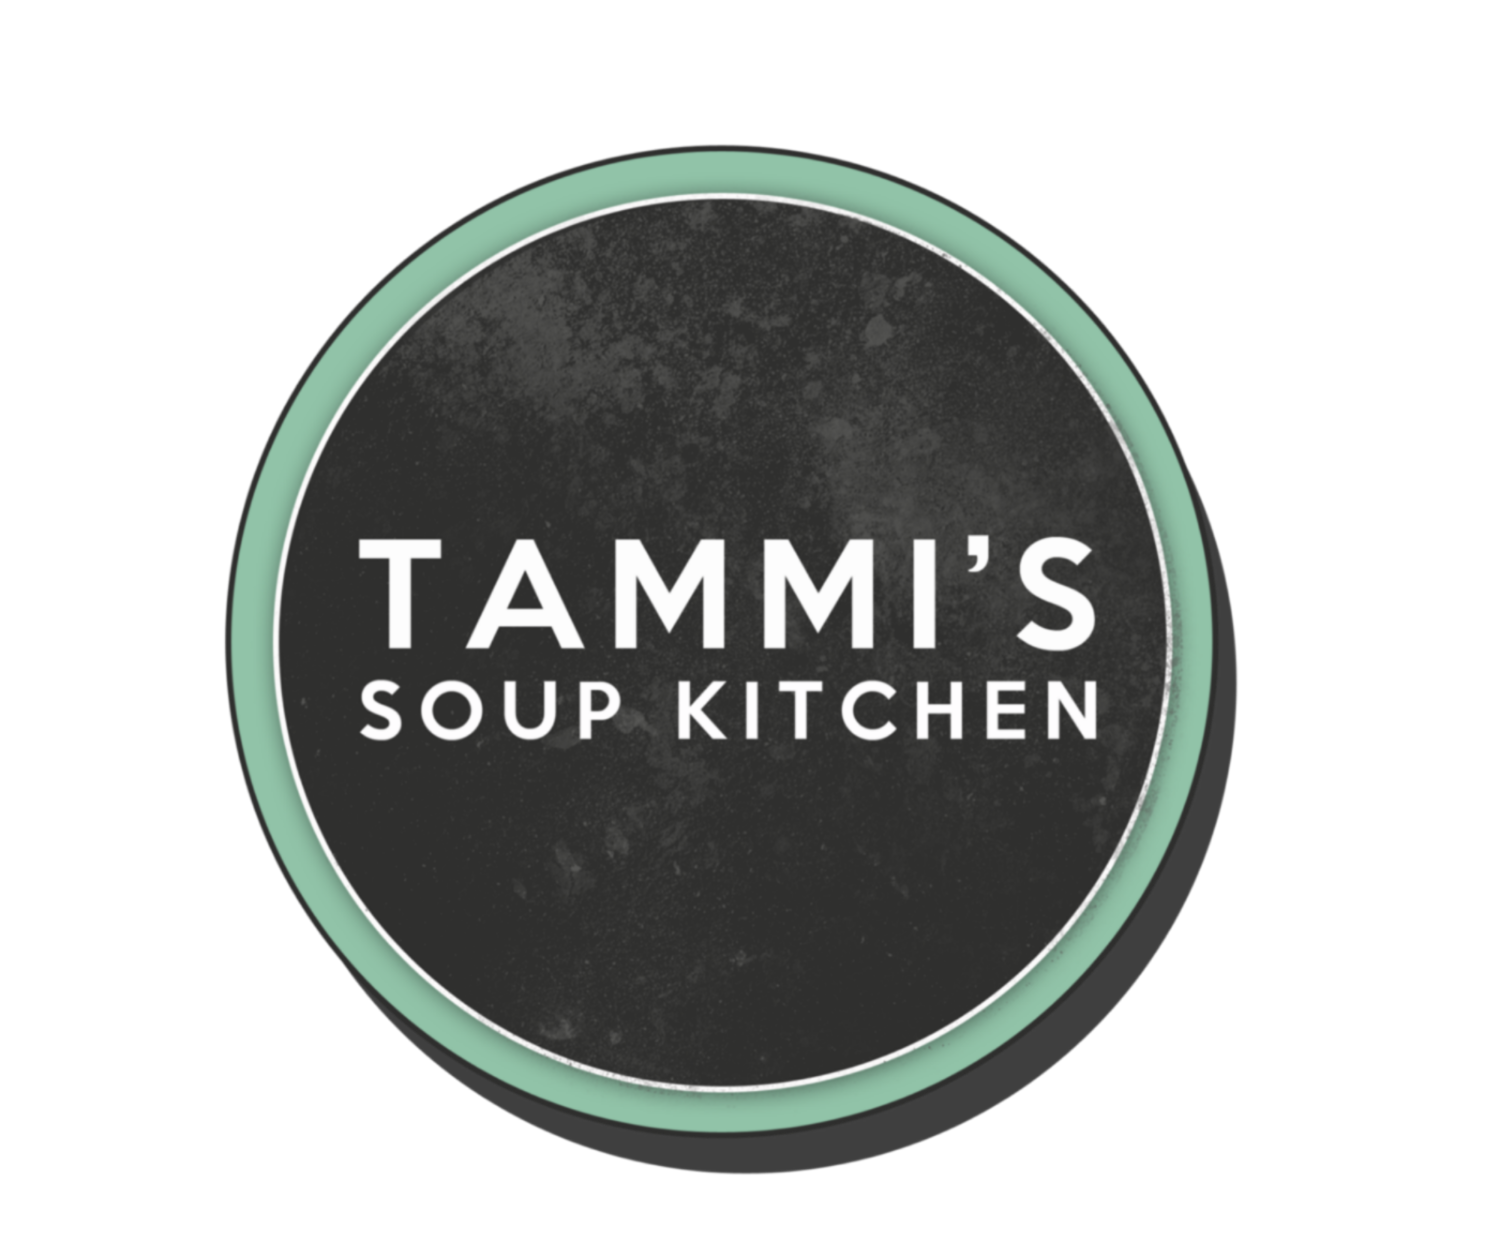 Tammi's Soup Kitchen